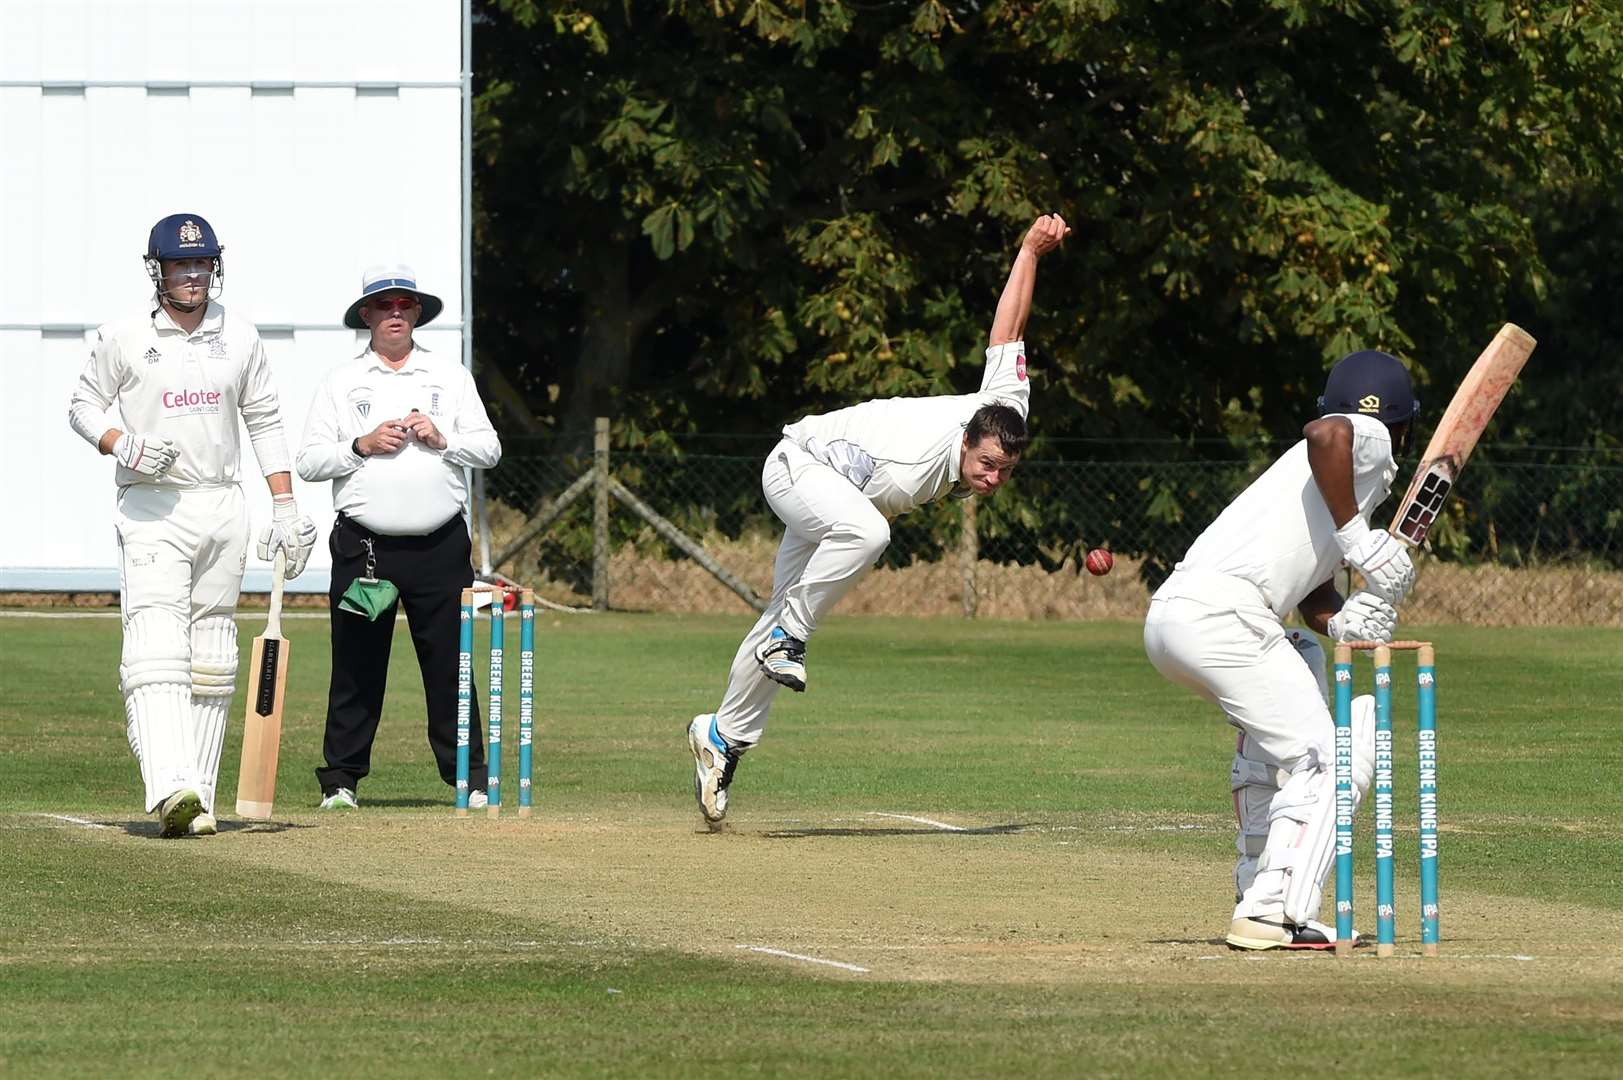 CRICKET - Woolpit (Bowling/Fielding) v Hadleigh (Batting)...Pictured: Will Parker bowling....PICTURE: Mecha Morton ... (15696496)